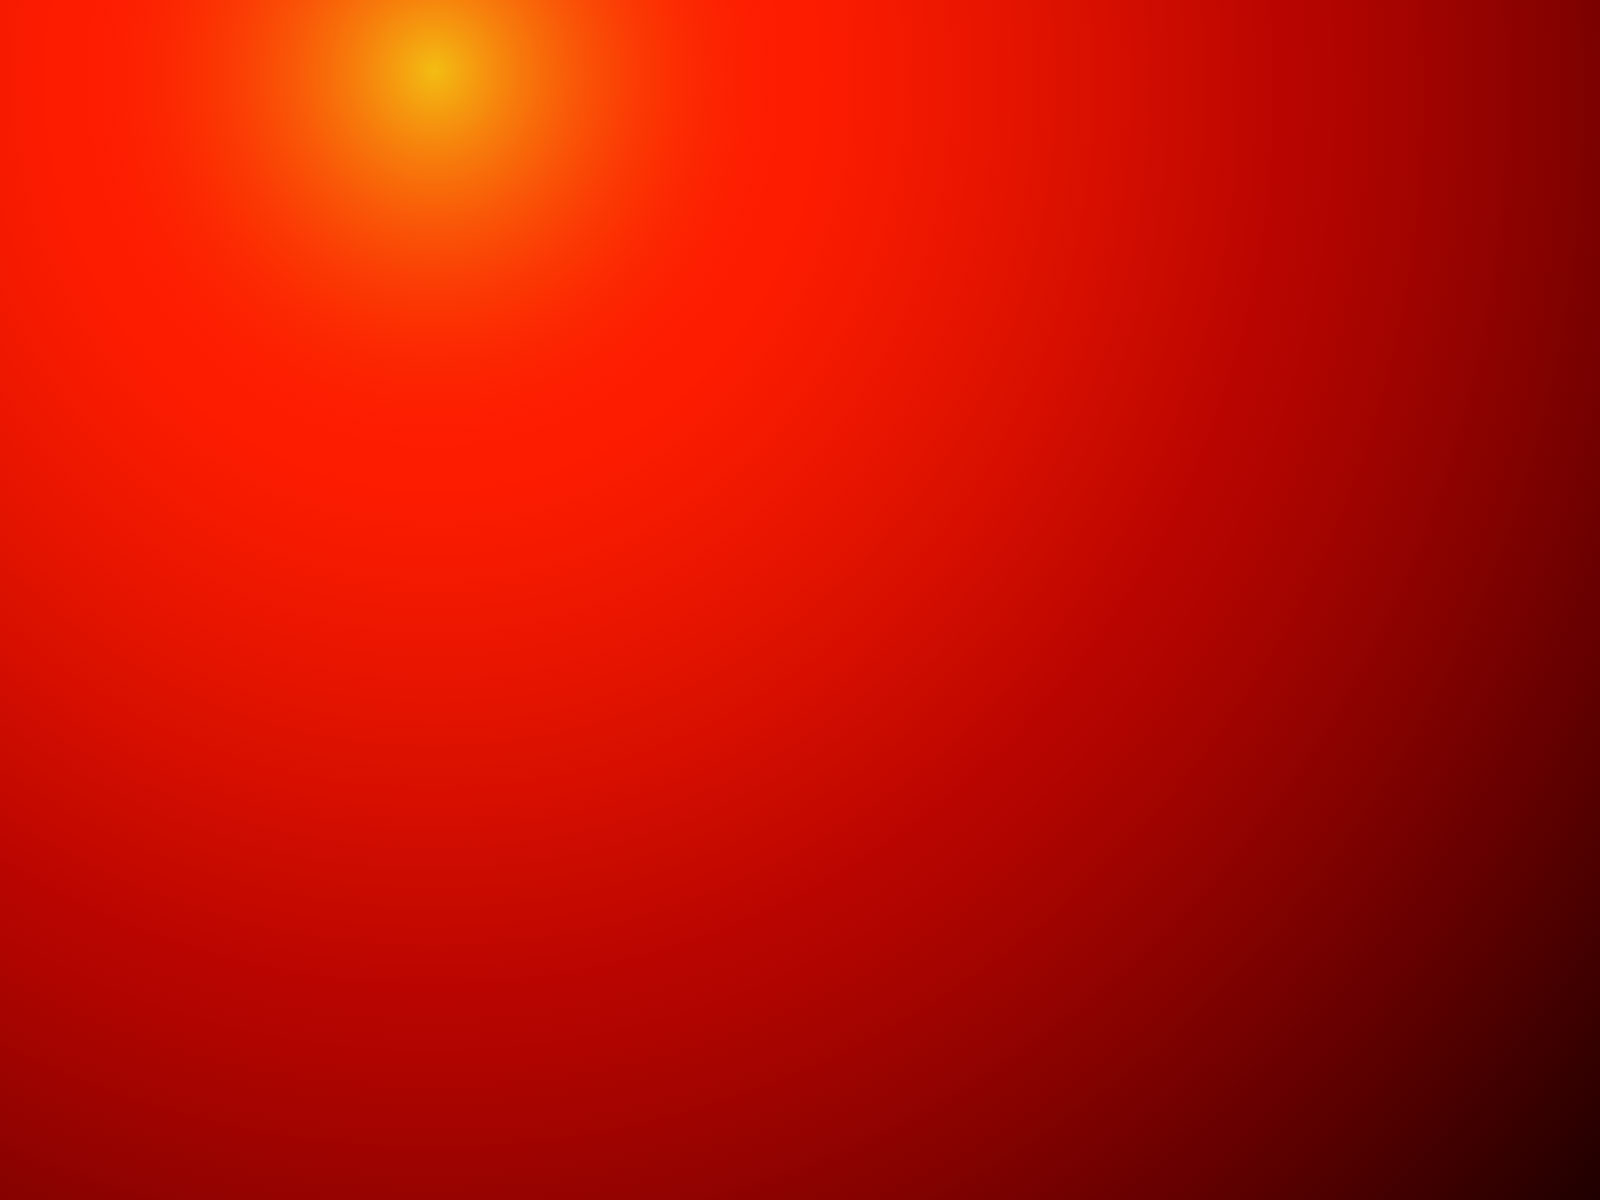 138843d1370238192-red-wallpaper-red-wallpaper-pictures-1600x1200.jpg